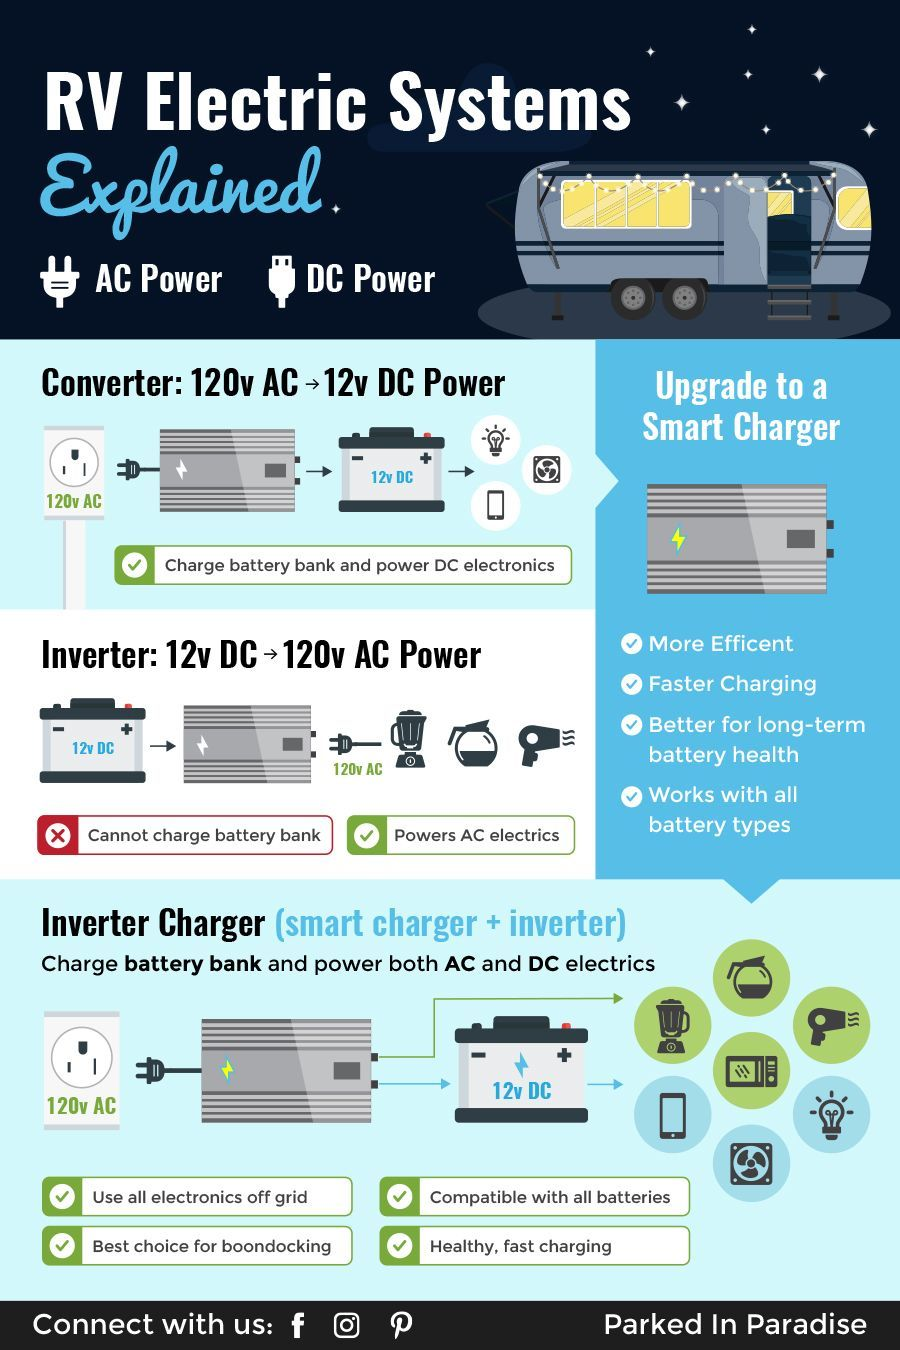 Converters Inverters Inverter Chargers For Rvs In 2020 5th Wheel Travel Trailers Travel Trailer Van Life